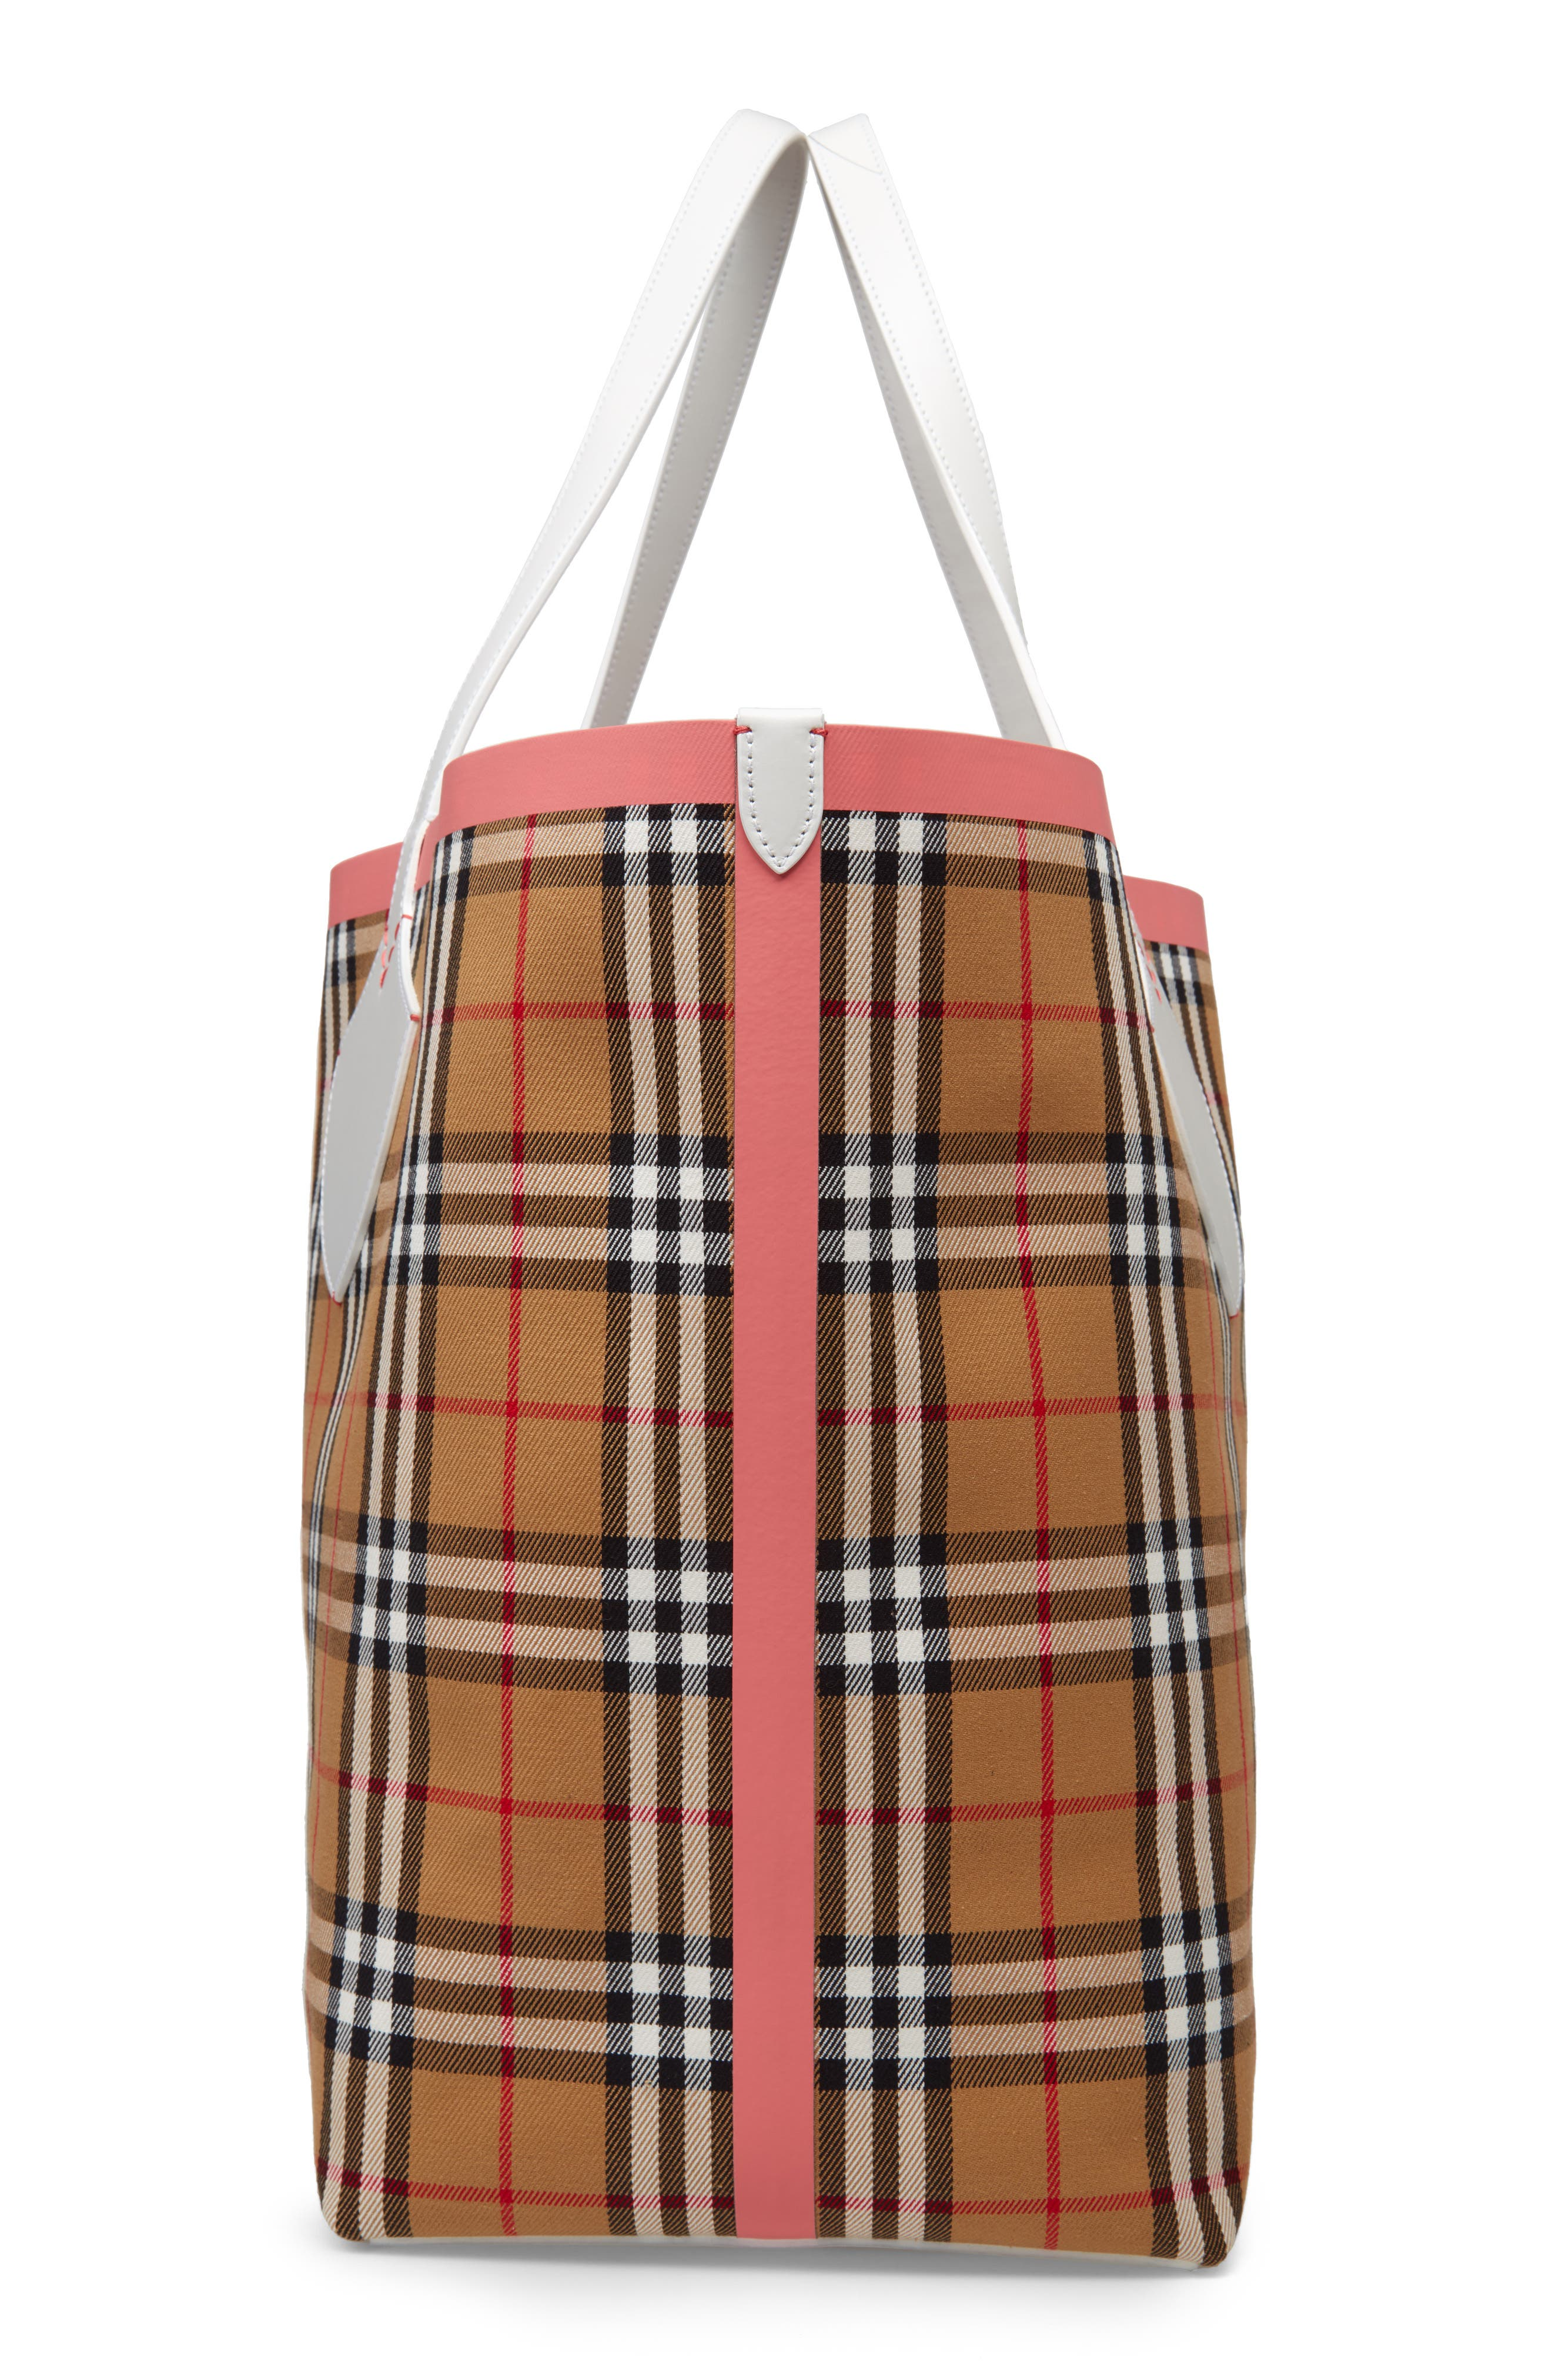 Giant Check Reversible Tote,                             Alternate thumbnail 6, color,                             BEIGE/ PINK/ CHALK WHITE